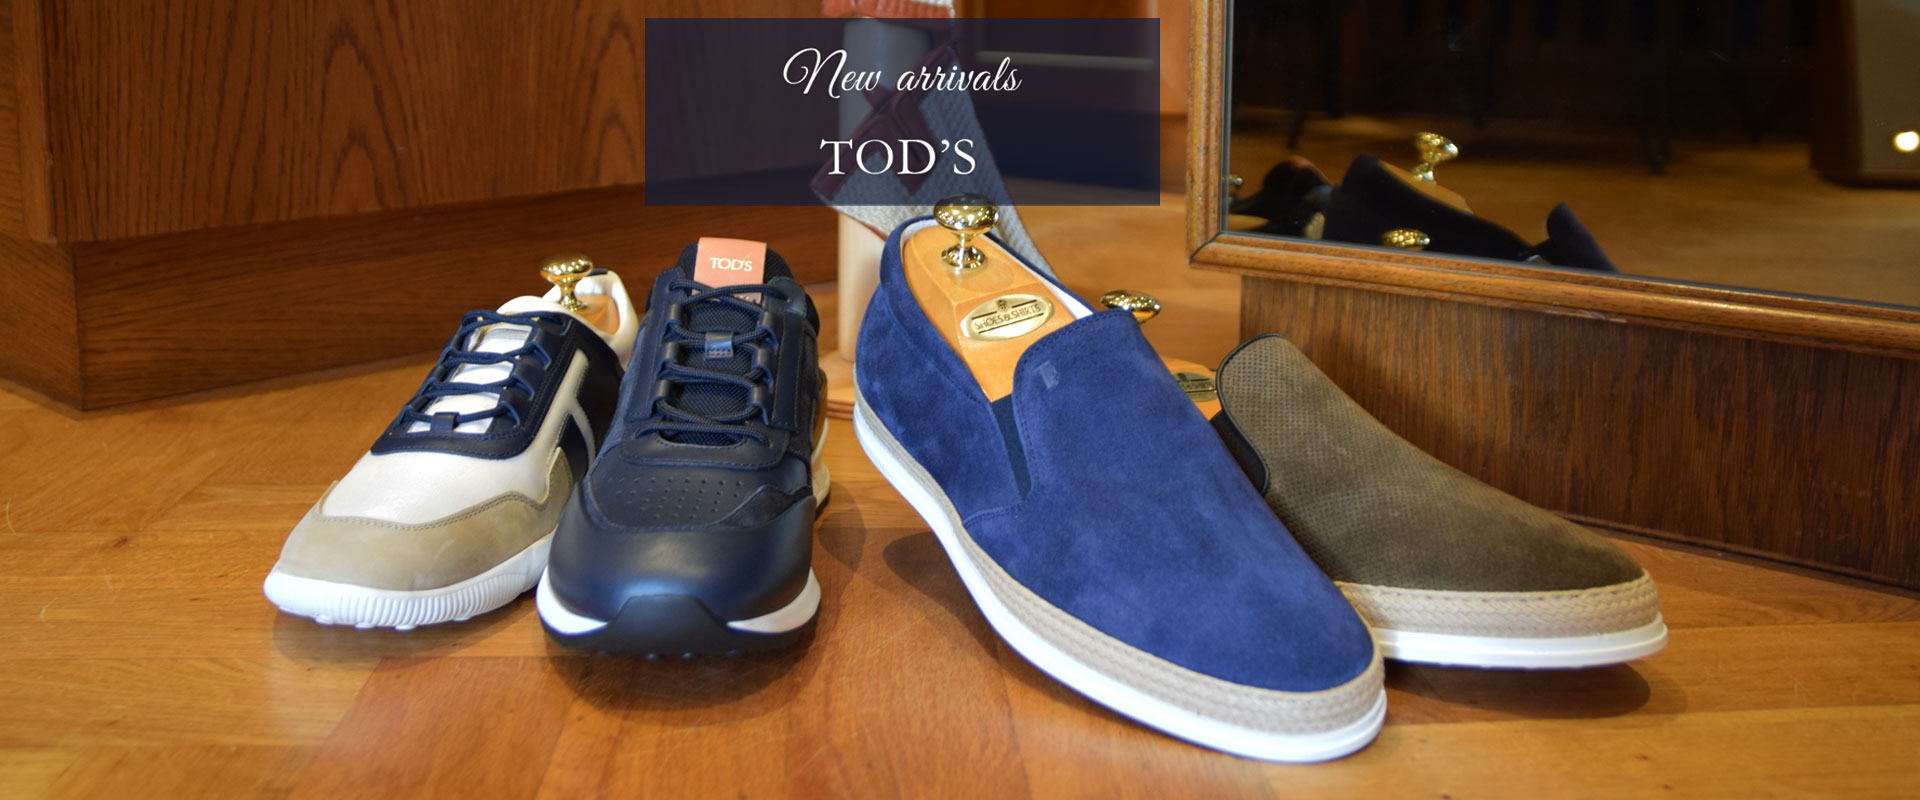 Tod's banner new arrival #2 2020